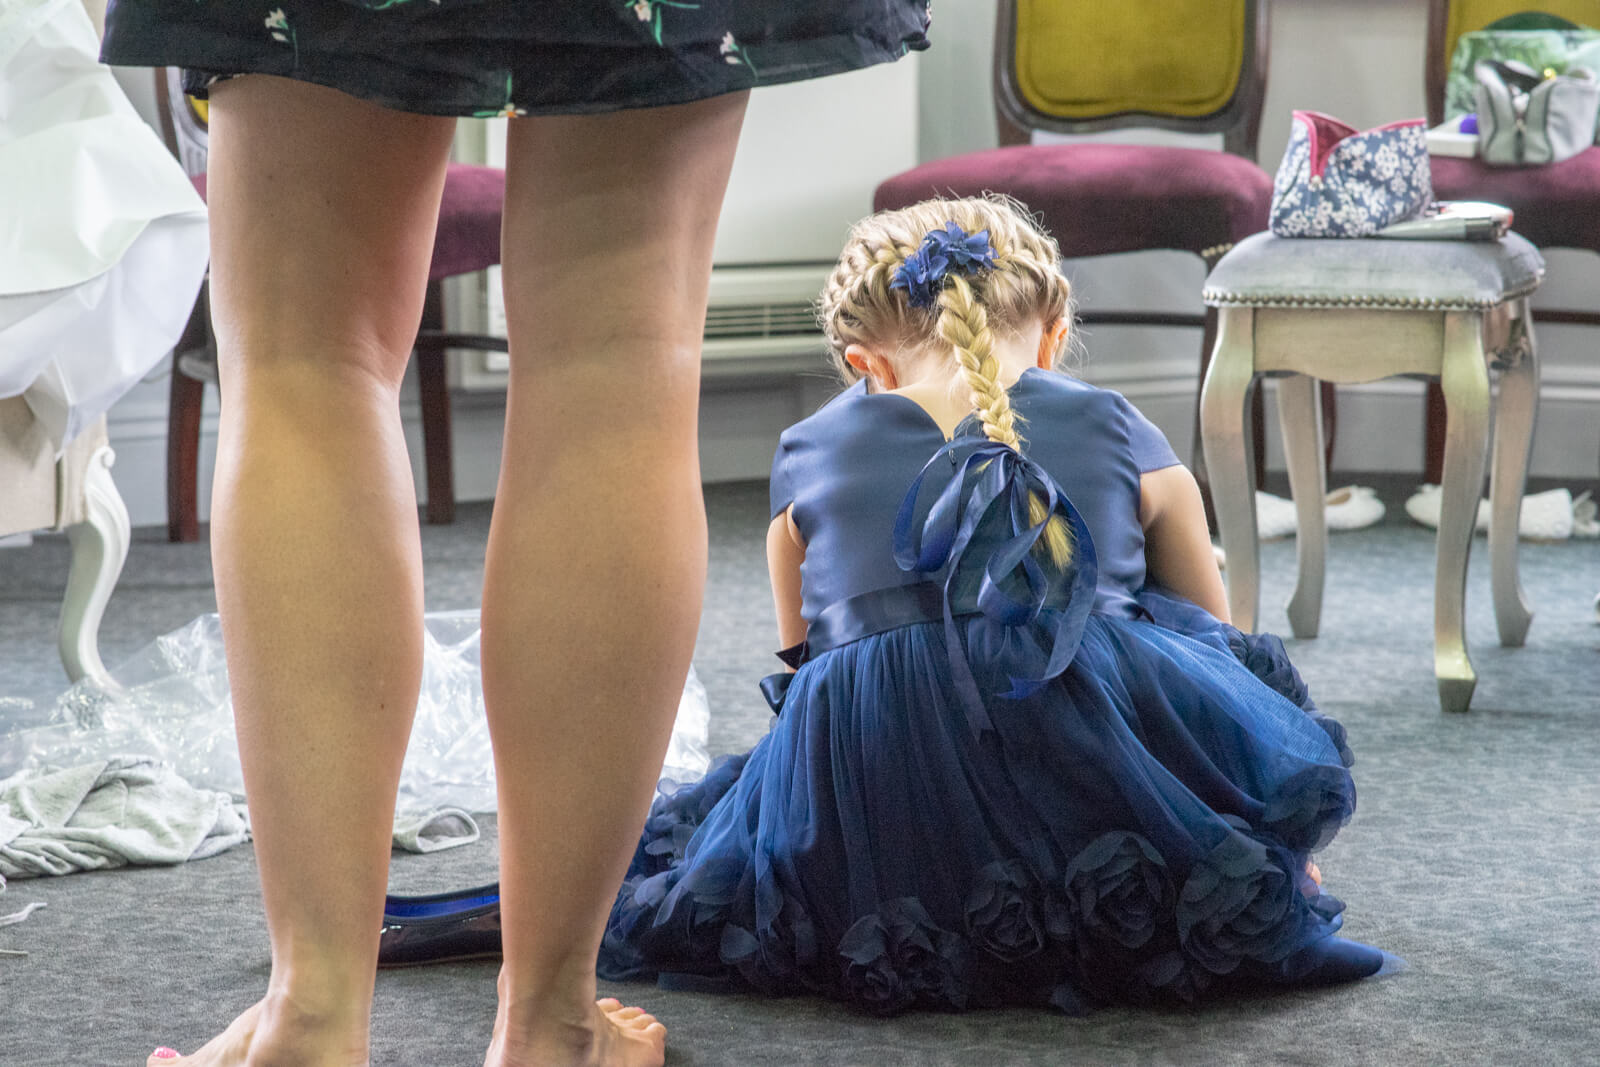 Child bridesmaid in blue dress sitting on the floor taken from behind